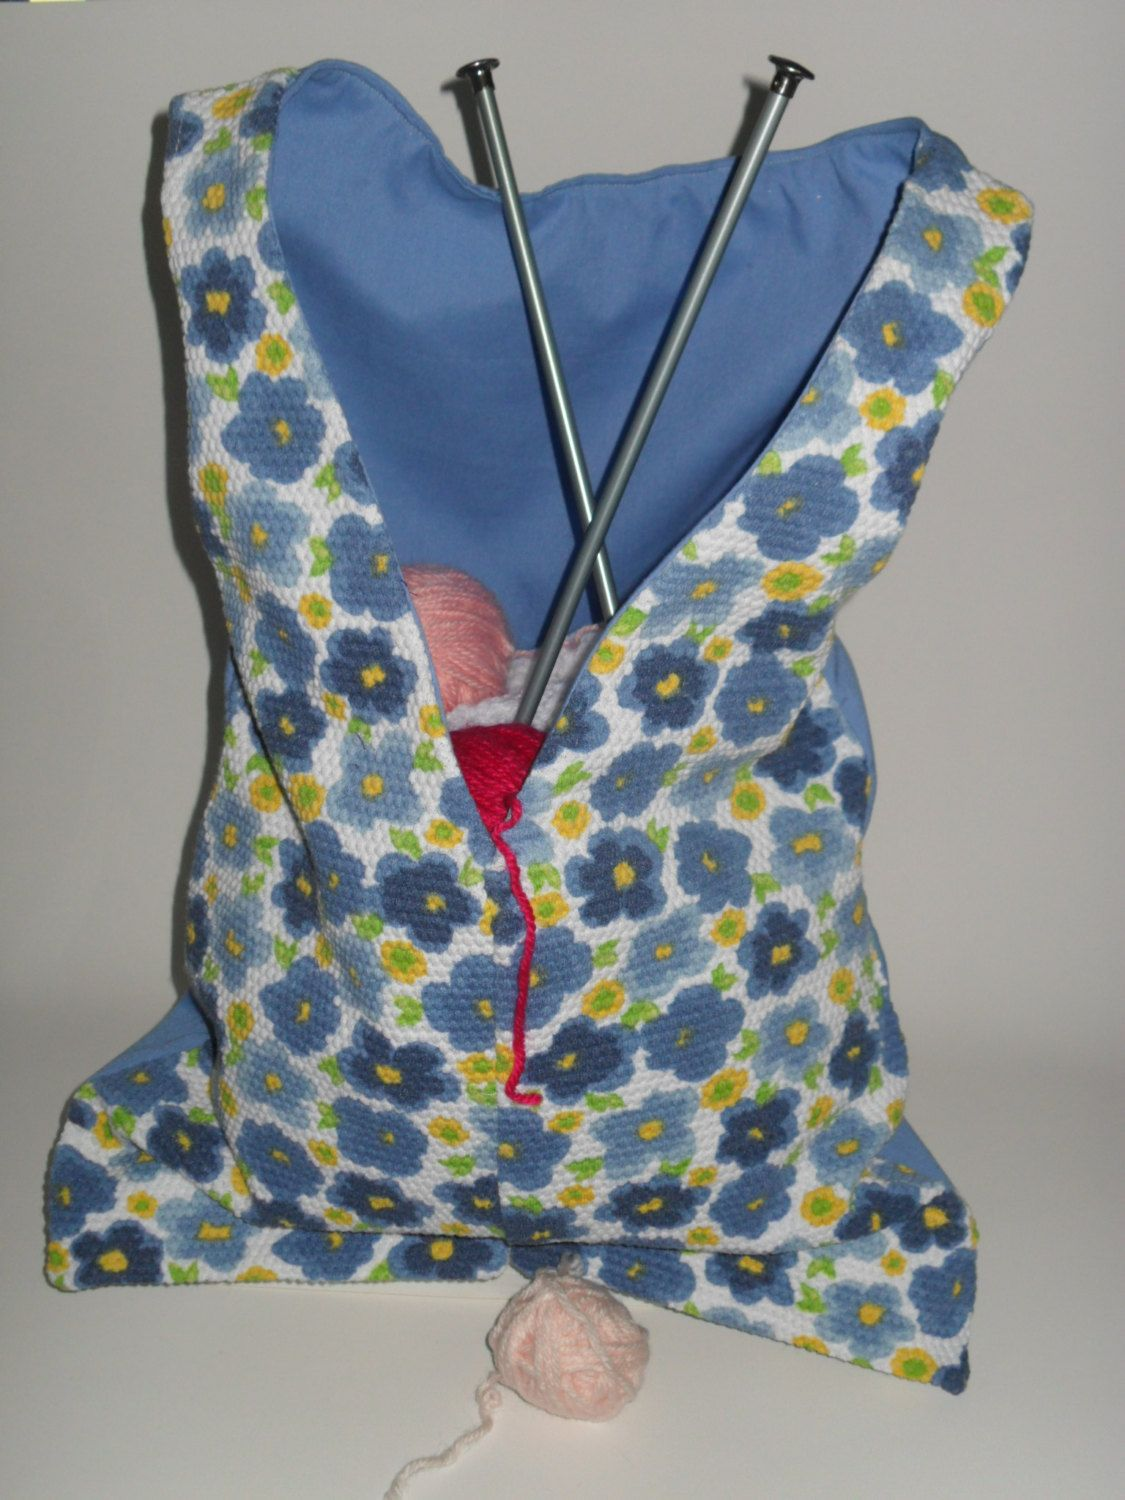 Upcycled Tote Bag Project Bag Blue & Yellow Flowers Jumpsuit over a Solid Blue Dress Bag form Fully Lined Little Dress Bag Little Pants Bag - pinned by pin4etsy.com